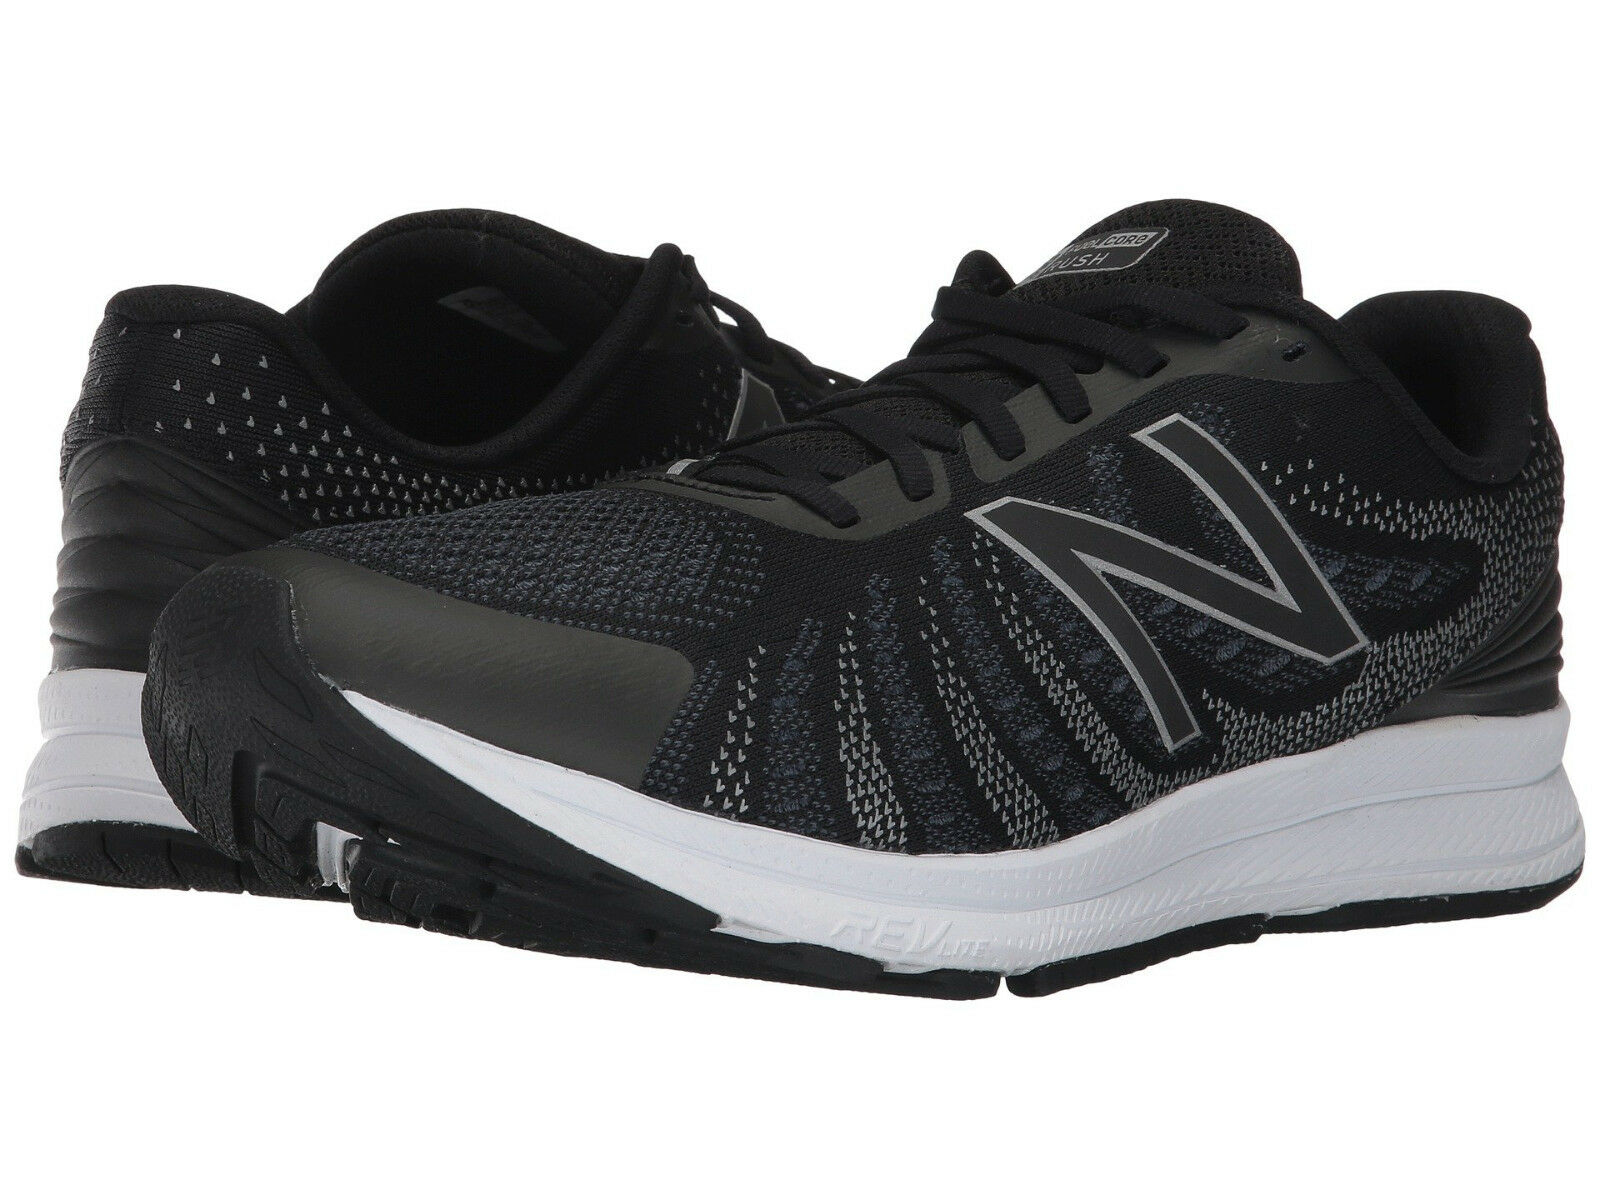 New Balance Men's Rush US 14 D Black Mesh Running Sneakers shoes  110.00